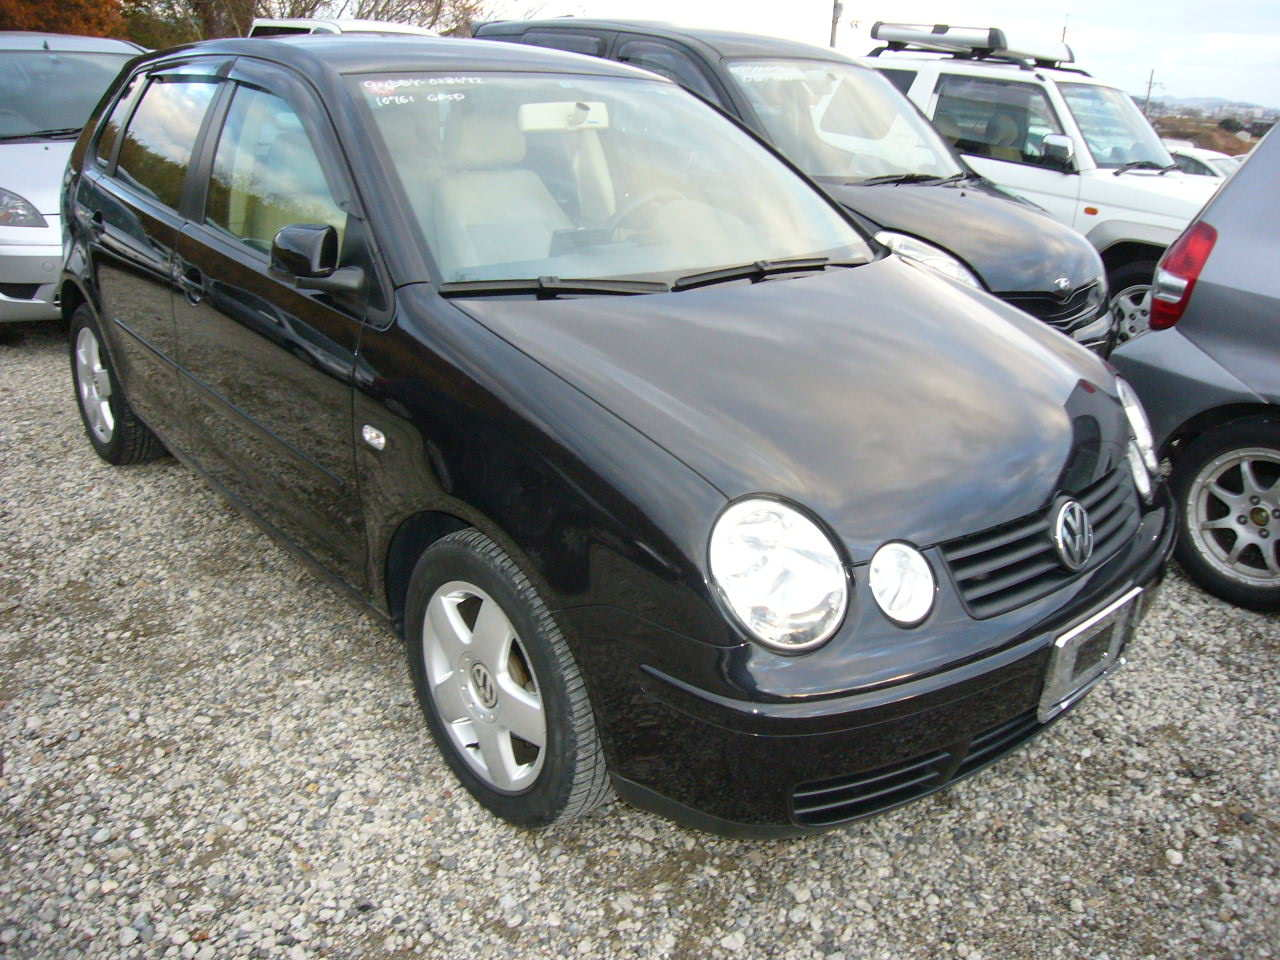 2004 volkswagen polo photos 1 4 gasoline ff automatic for sale. Black Bedroom Furniture Sets. Home Design Ideas